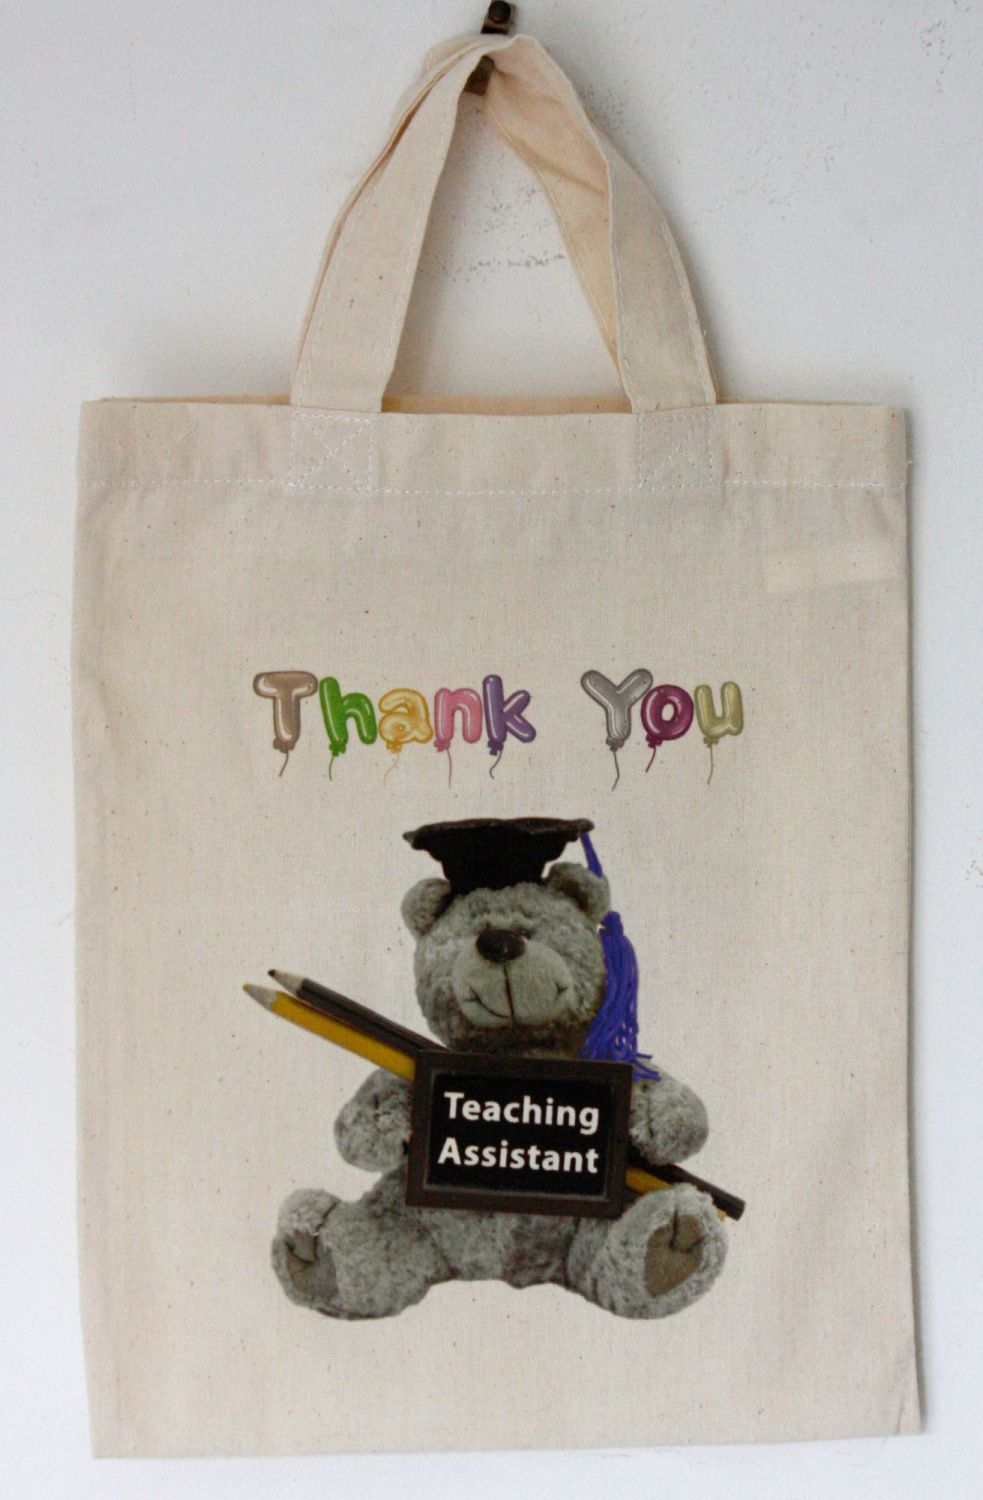 Thank You (Teaching Assistant)